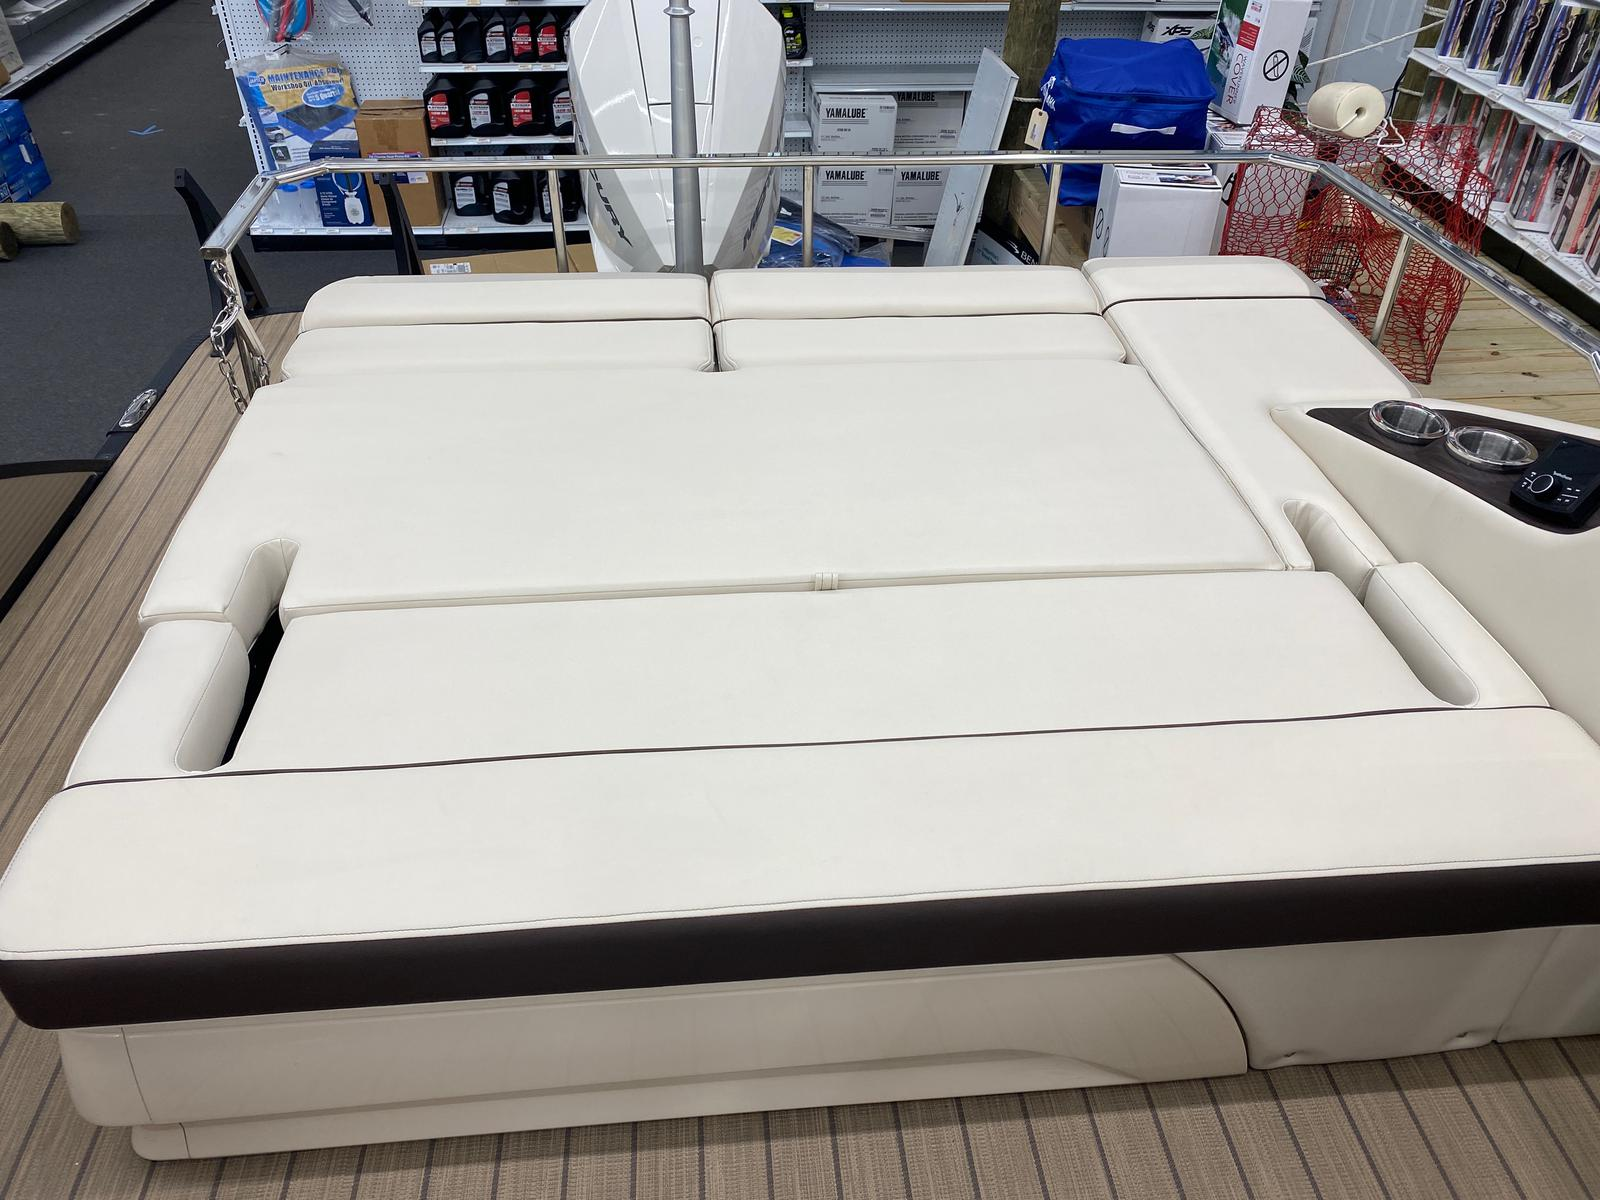 2021 Bennington boat for sale, model of the boat is 23 RSBWA WSHLD DLX Fold Open SP Arch Tri-Toon ESP Package & Image # 16 of 25